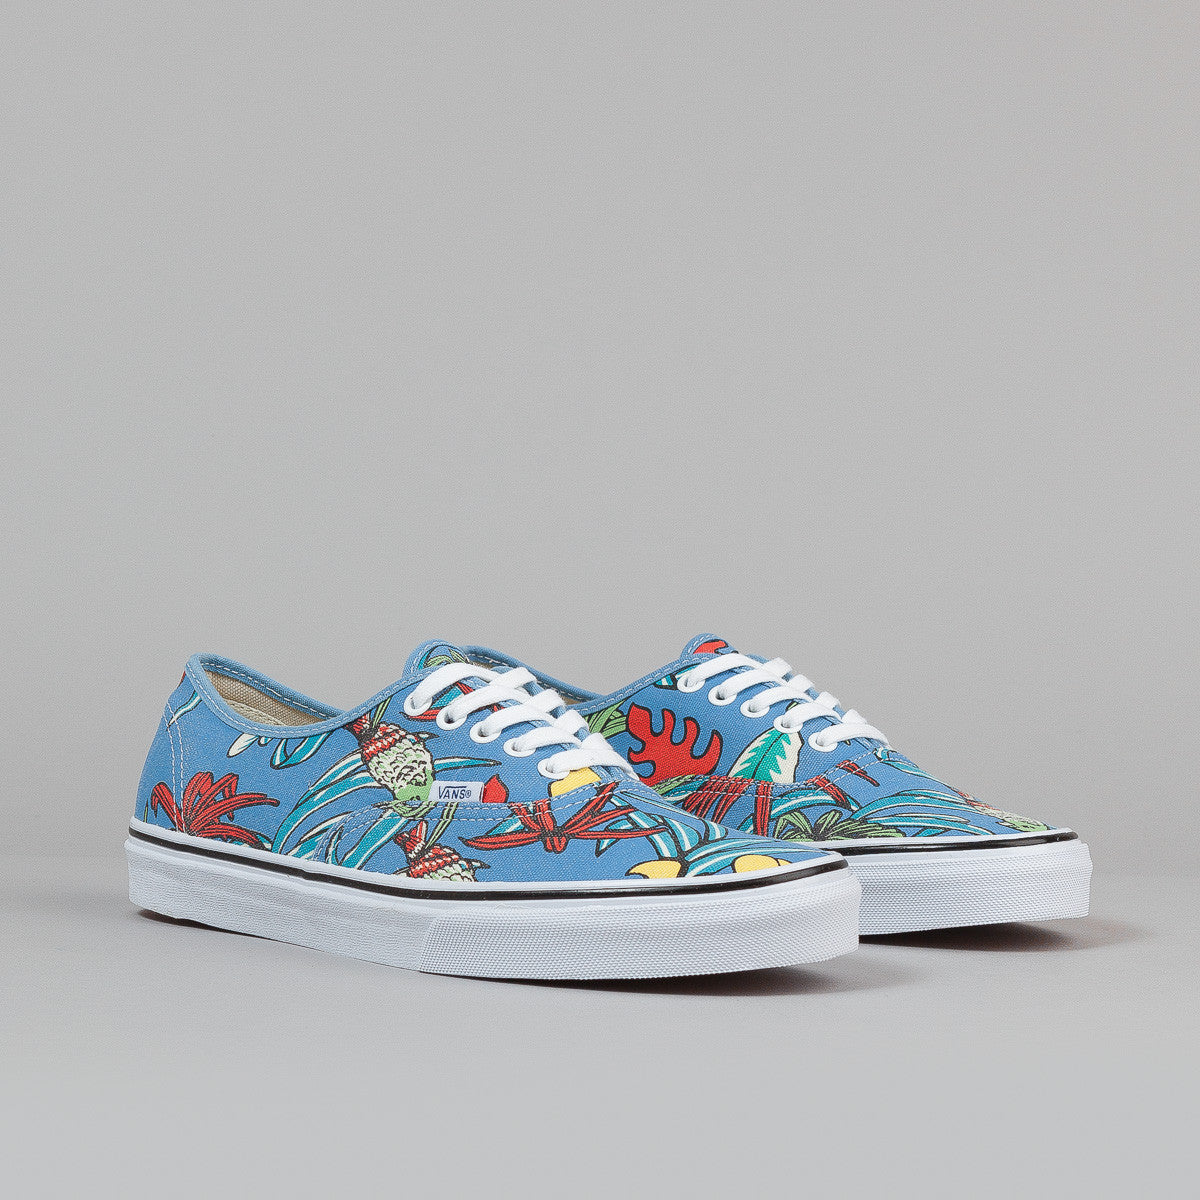 Vans Authentic Shoes - (Van Doren) Parrot / Light Blue